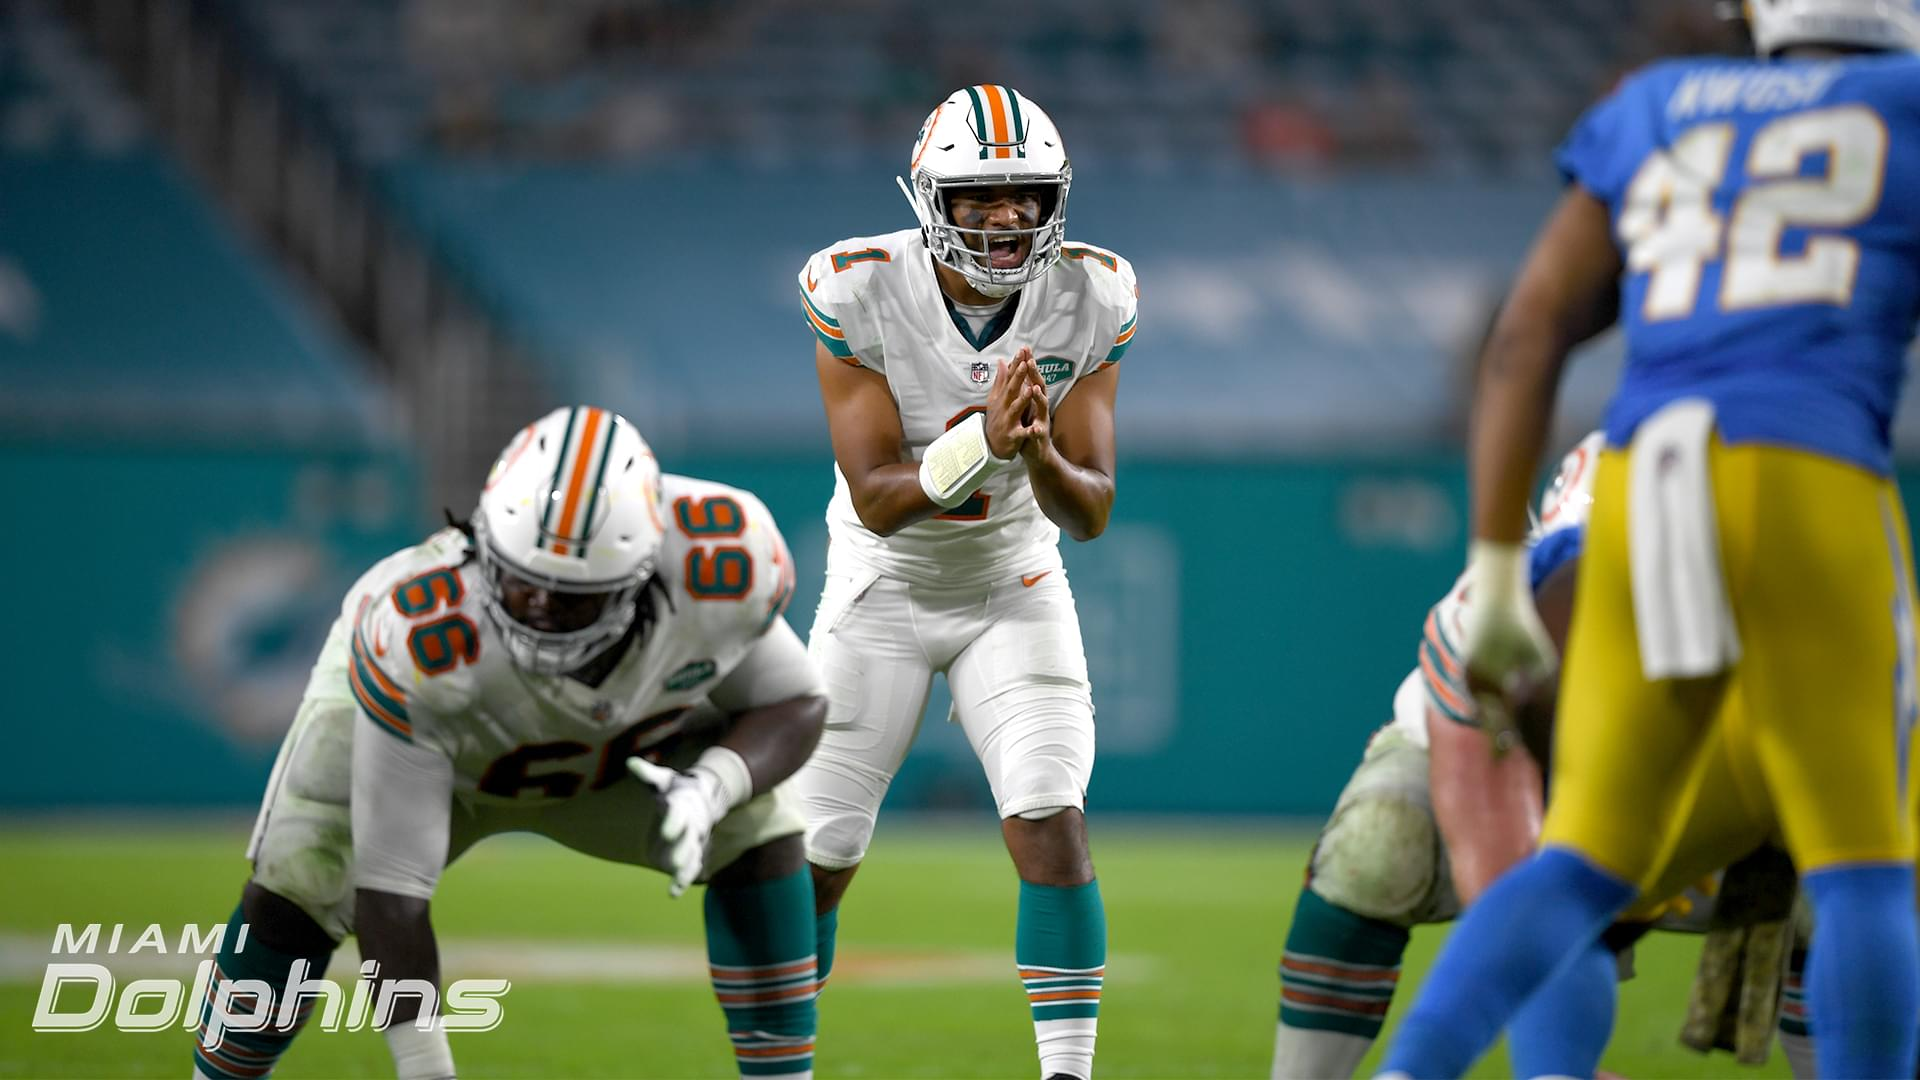 NFL Week 11 predictions, league game notes, players & teams making history